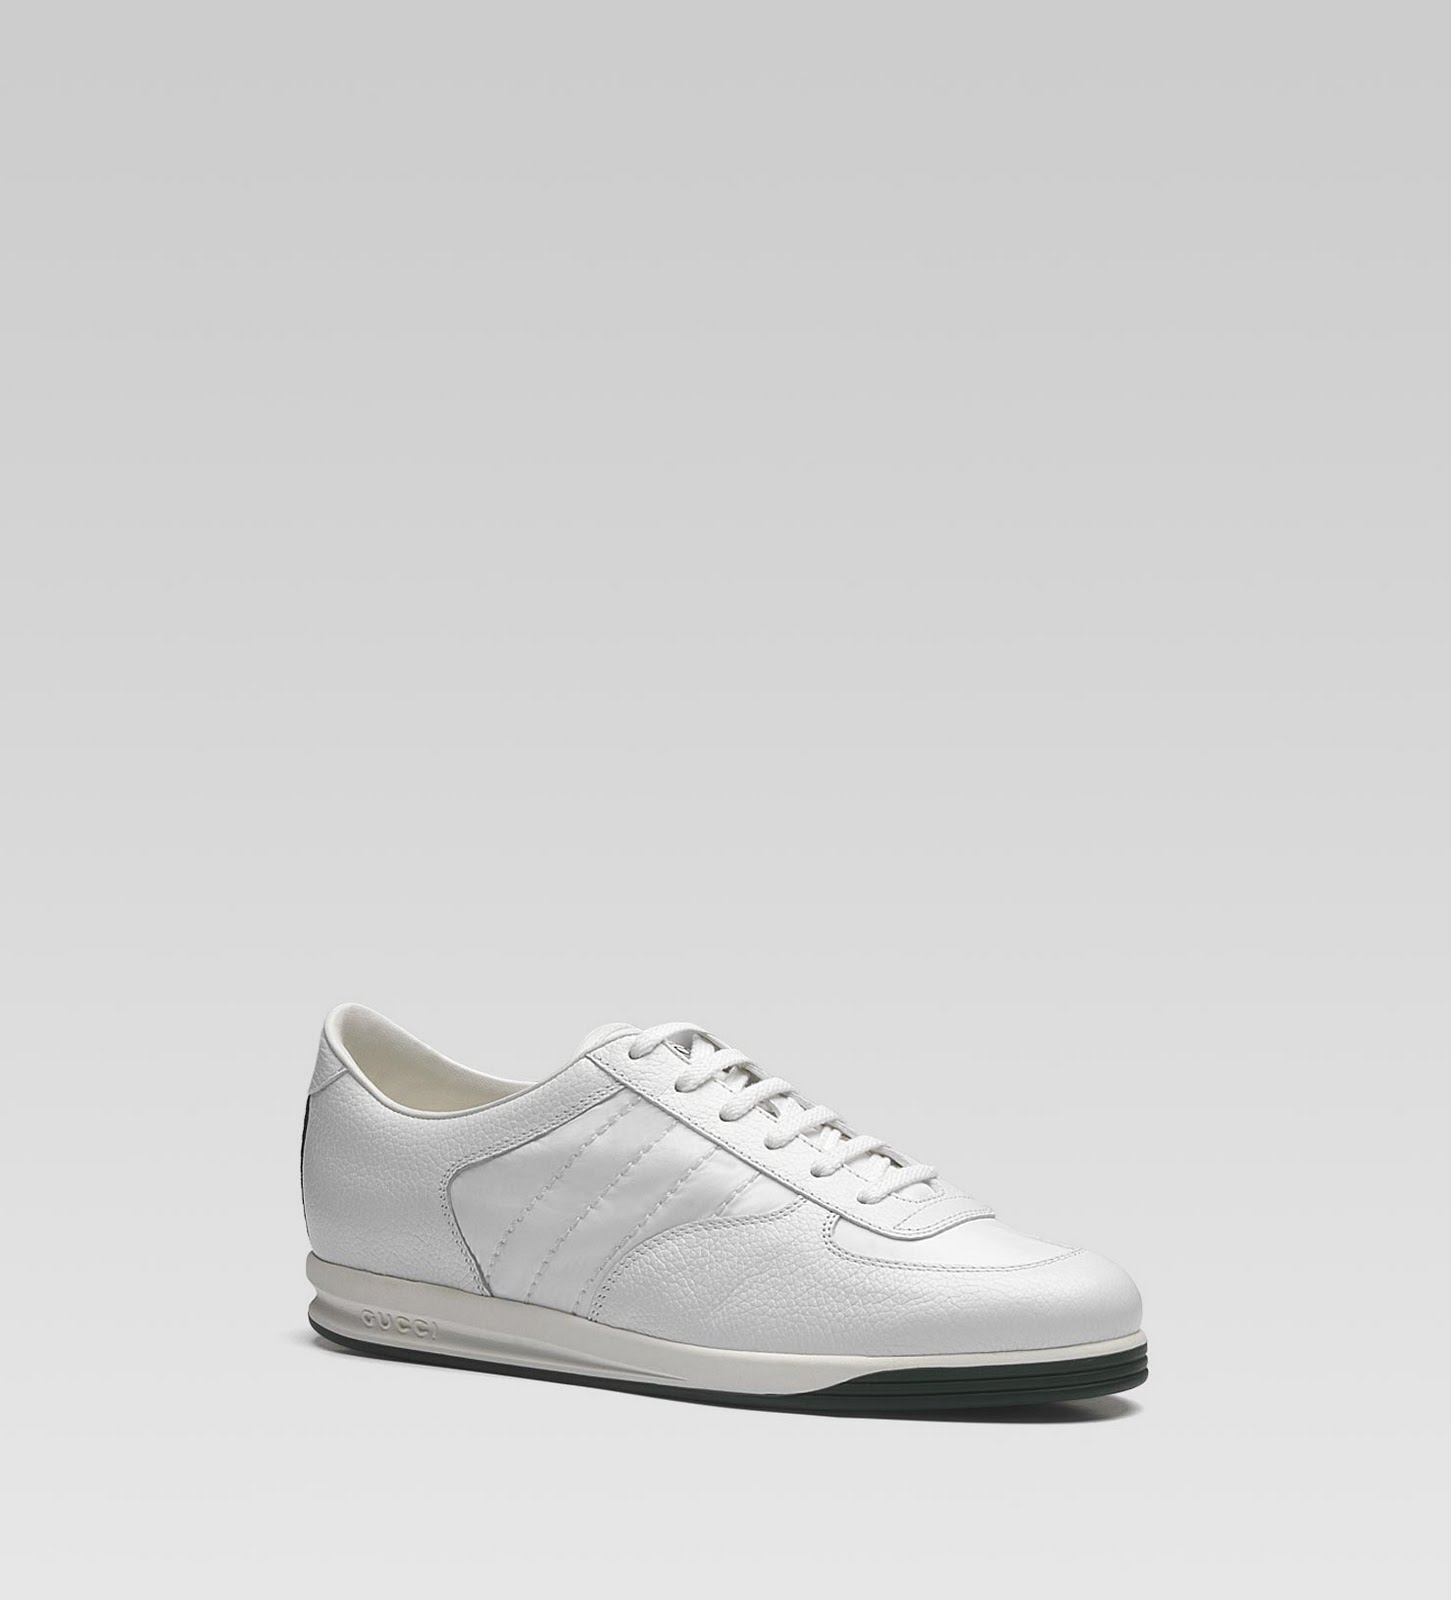 You can also find the latest images of the all white tennis shoes in the  gallery below : Old School Shoes: Nike ...